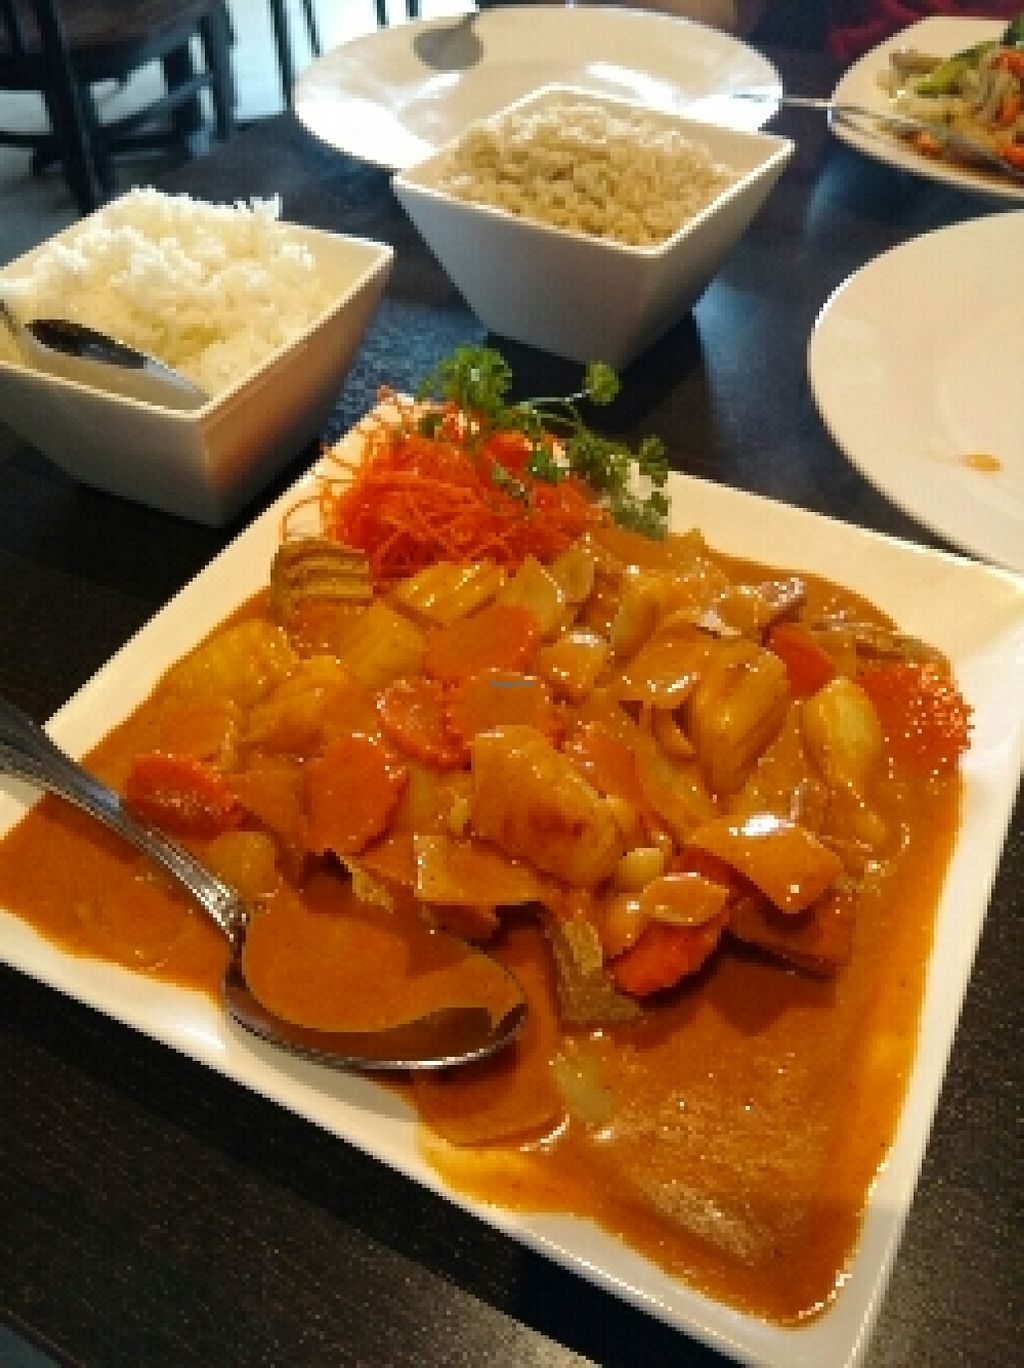 """Photo of Veganic Thai Cafe  by <a href=""""/members/profile/cranberries2"""">cranberries2</a> <br/>curry <br/> April 7, 2016  - <a href='/contact/abuse/image/67161/143284'>Report</a>"""